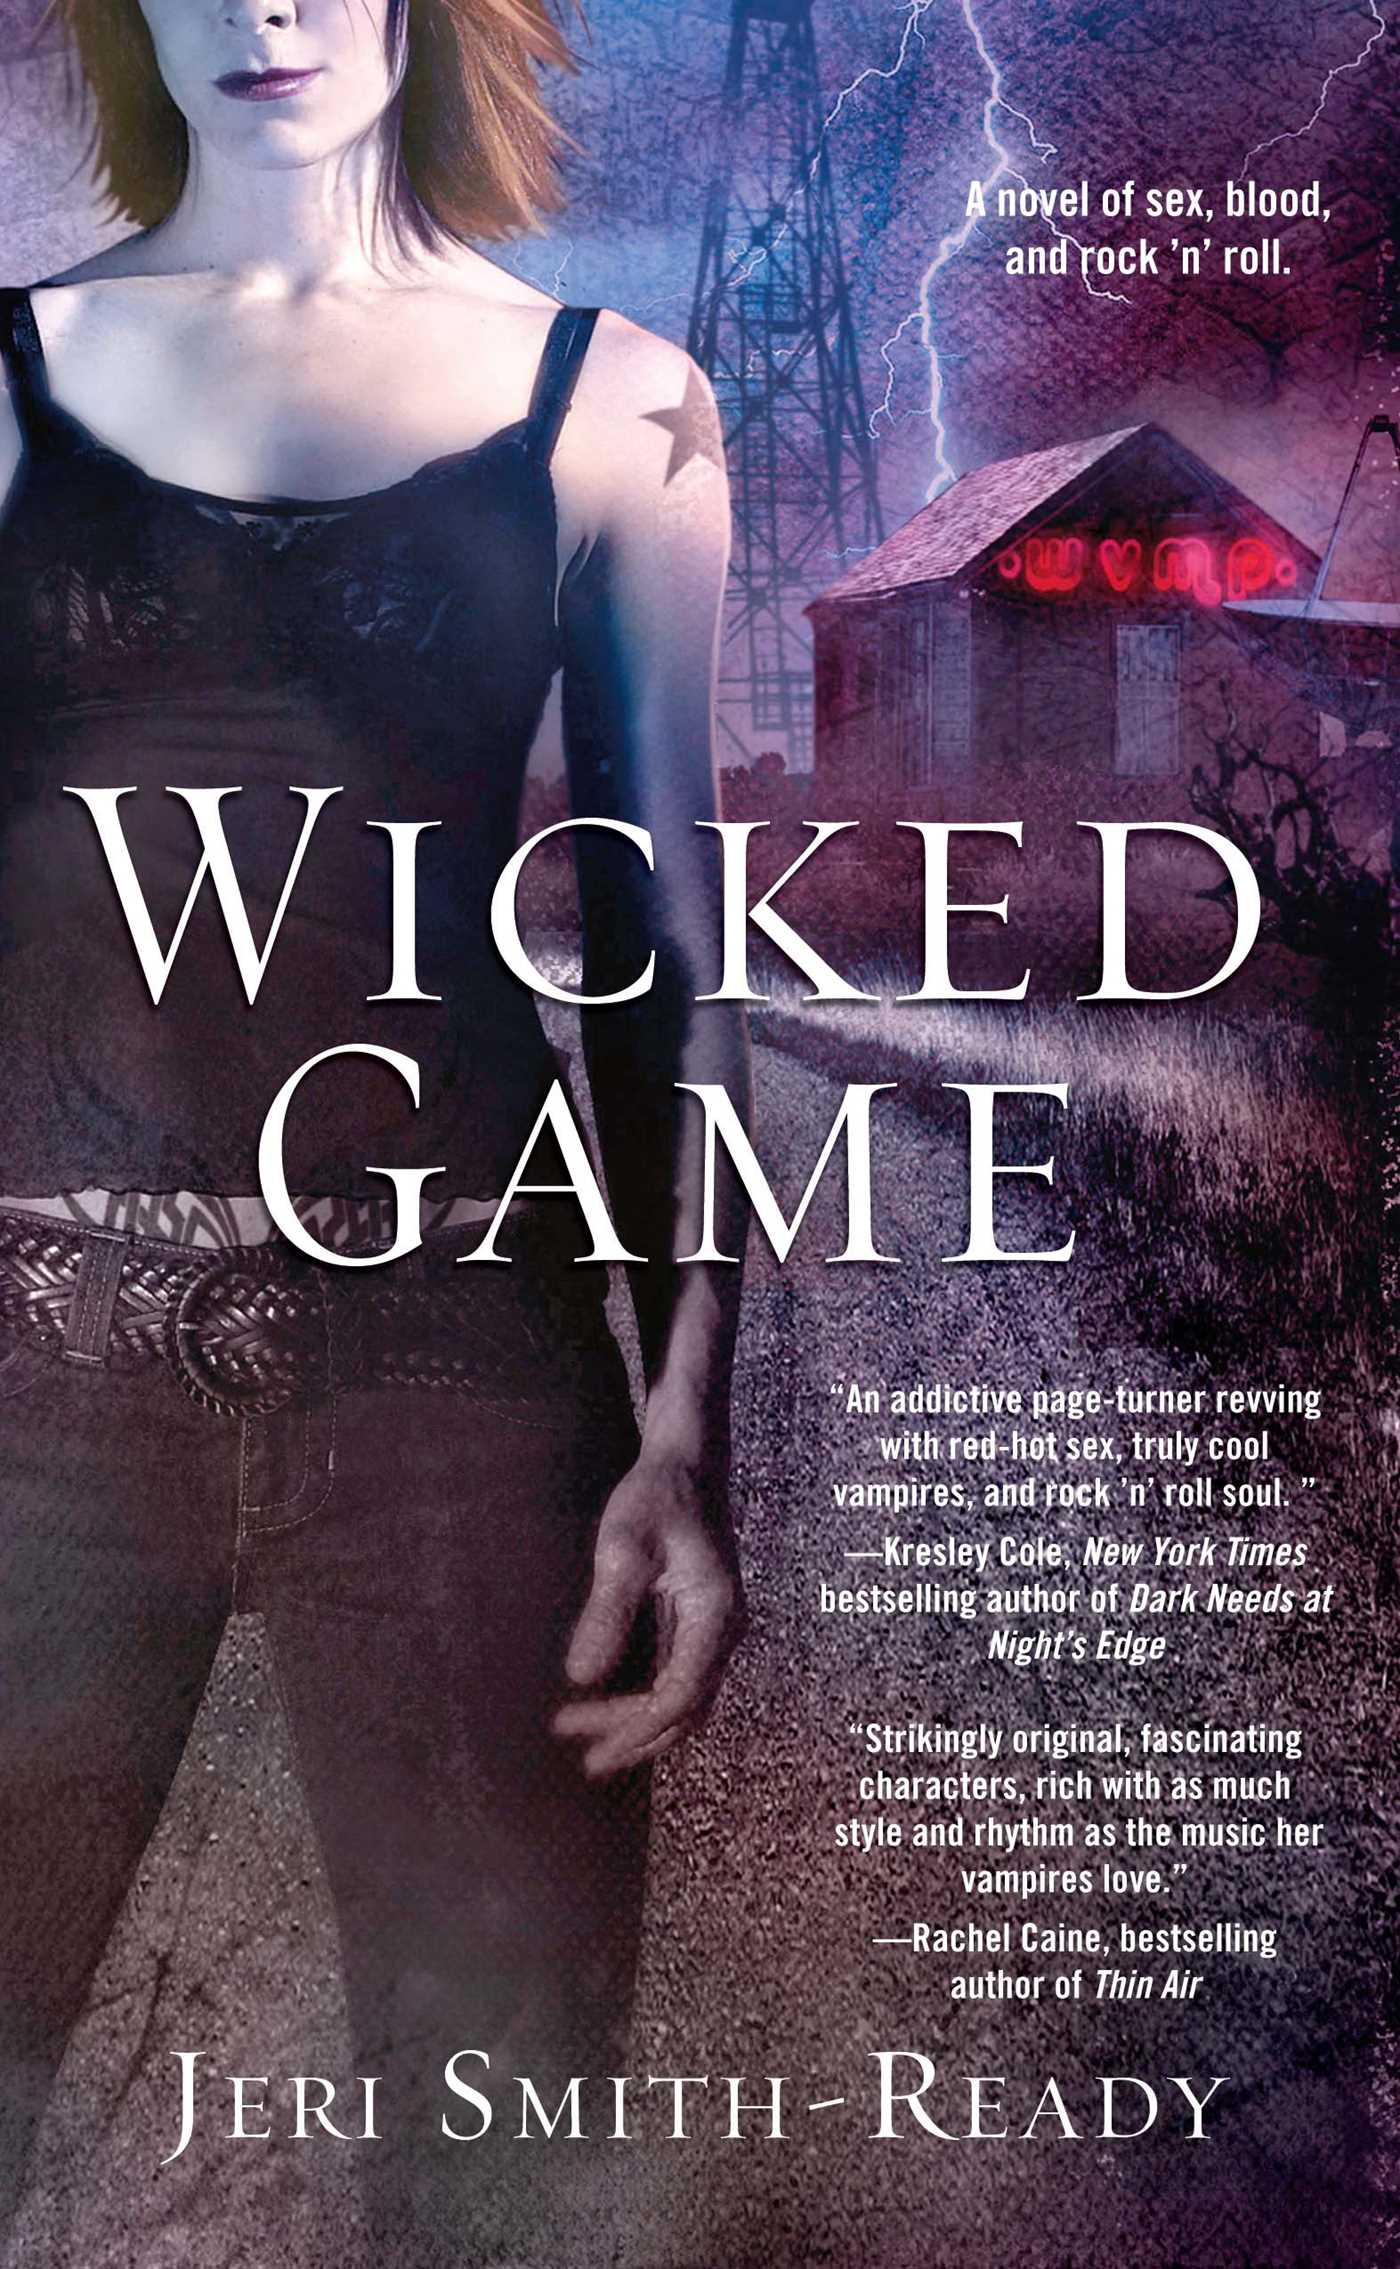 Wicked game 9781416566106 hr